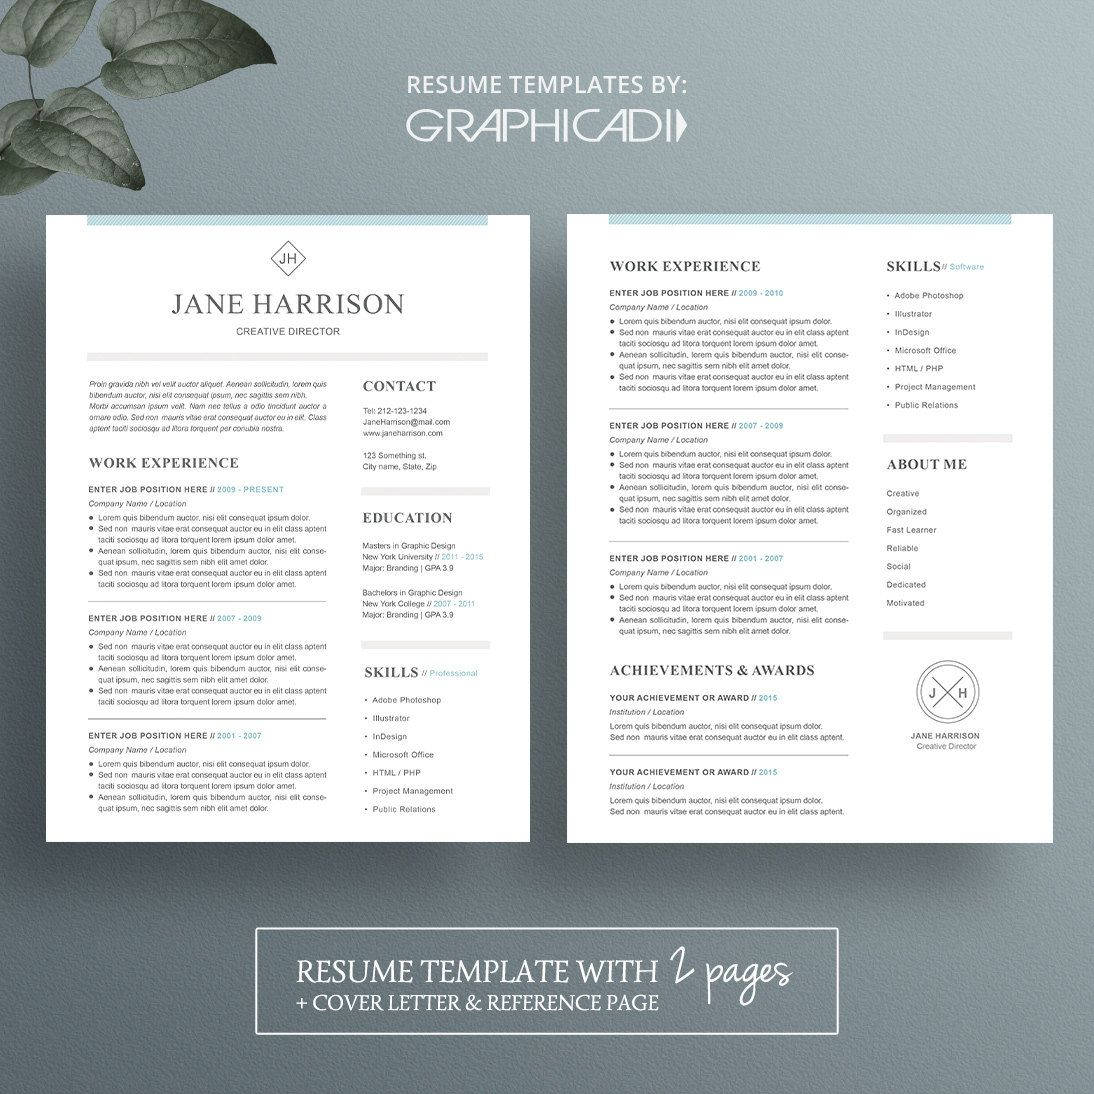 1 & 2 page resume template with cover letter and reference